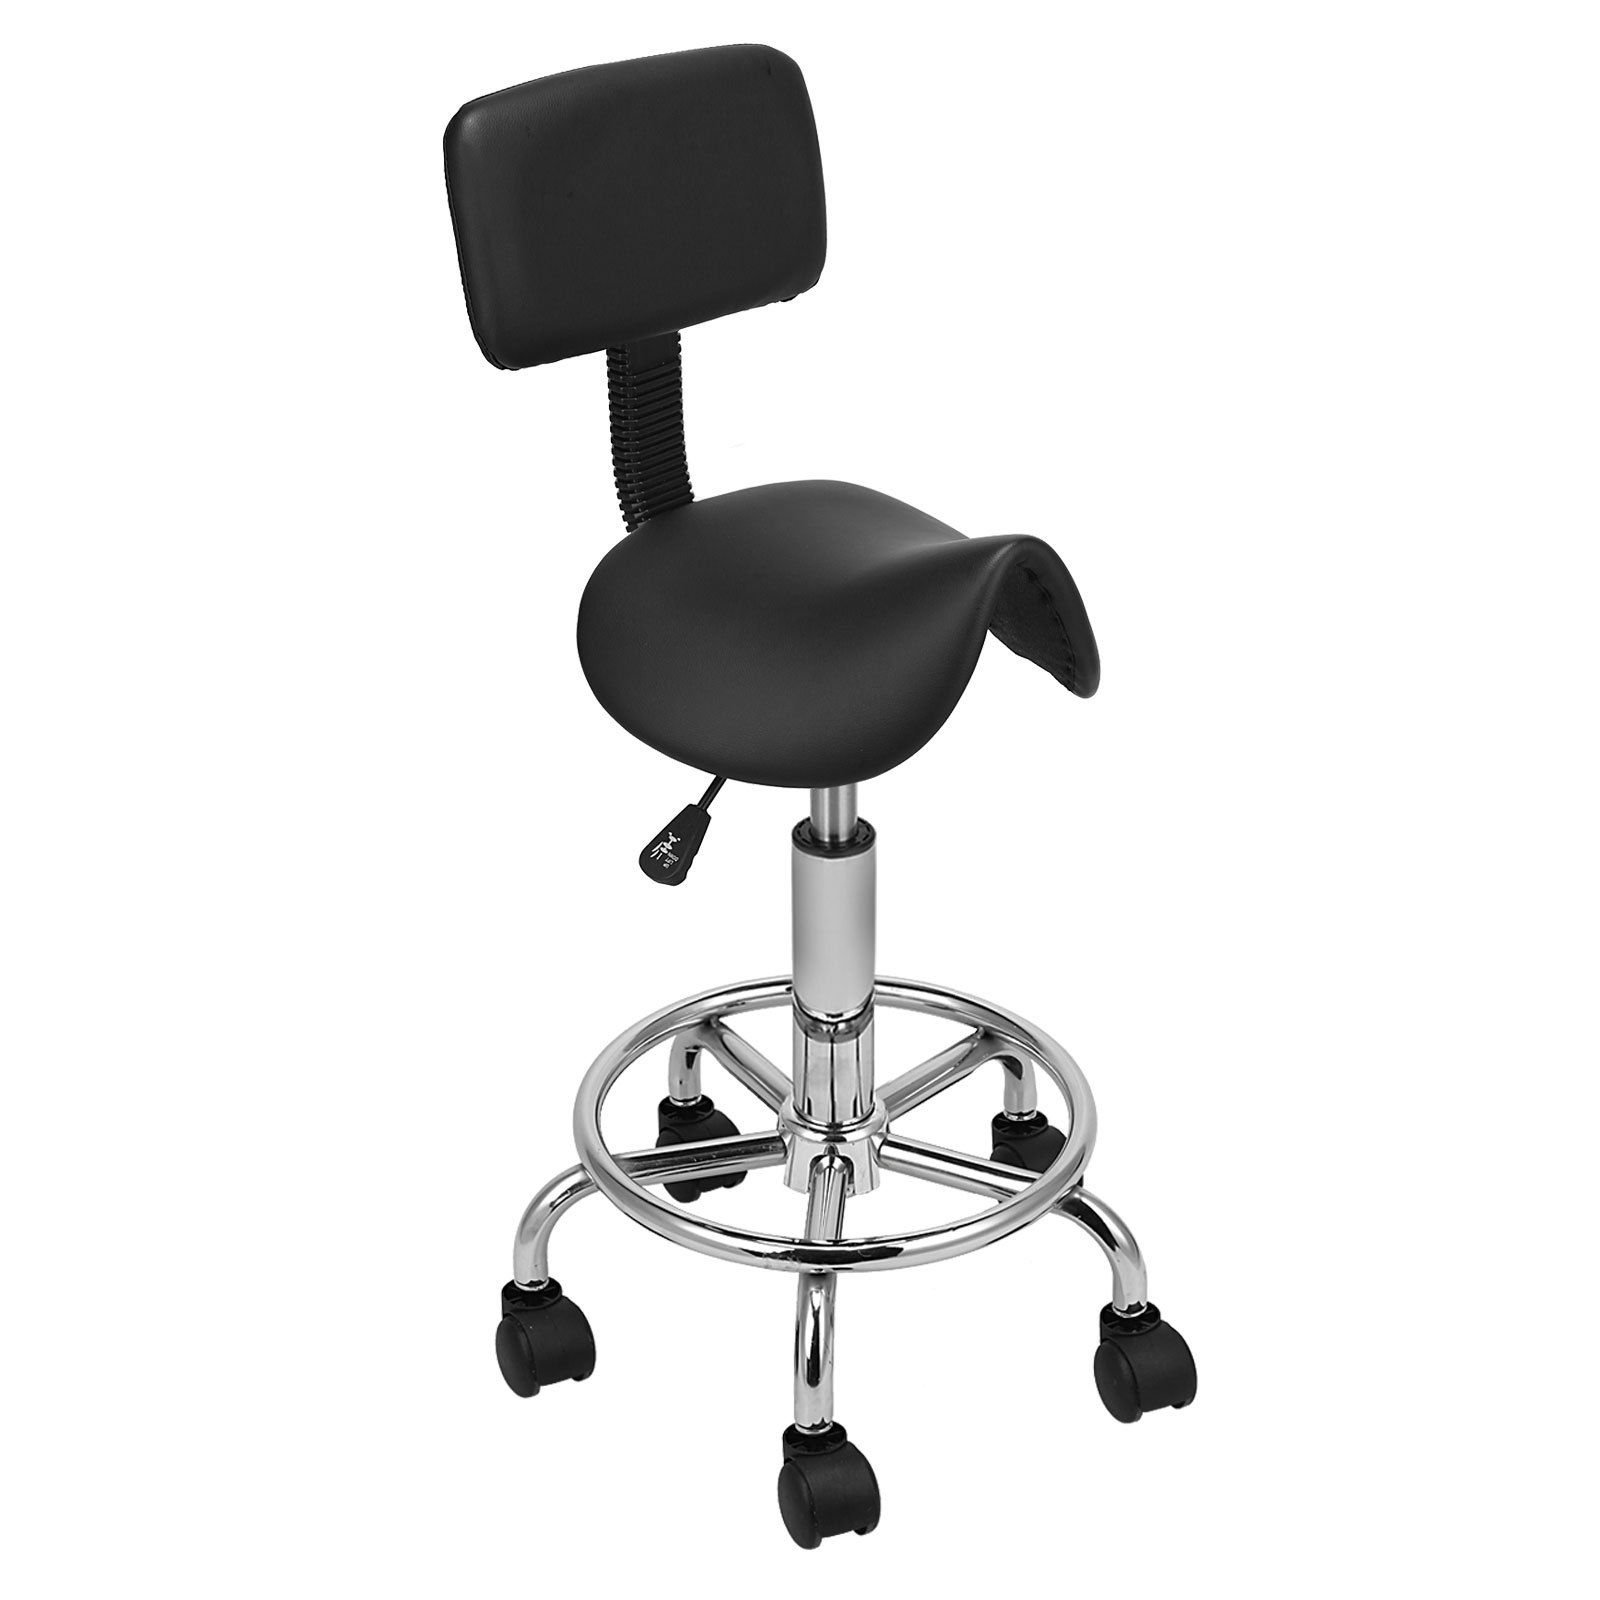 Hydraulic Saddle Salon Stool Massage Chair Tattoo Facial Spa Office Backrest Bonus free ebook By Allgoodsdelight365